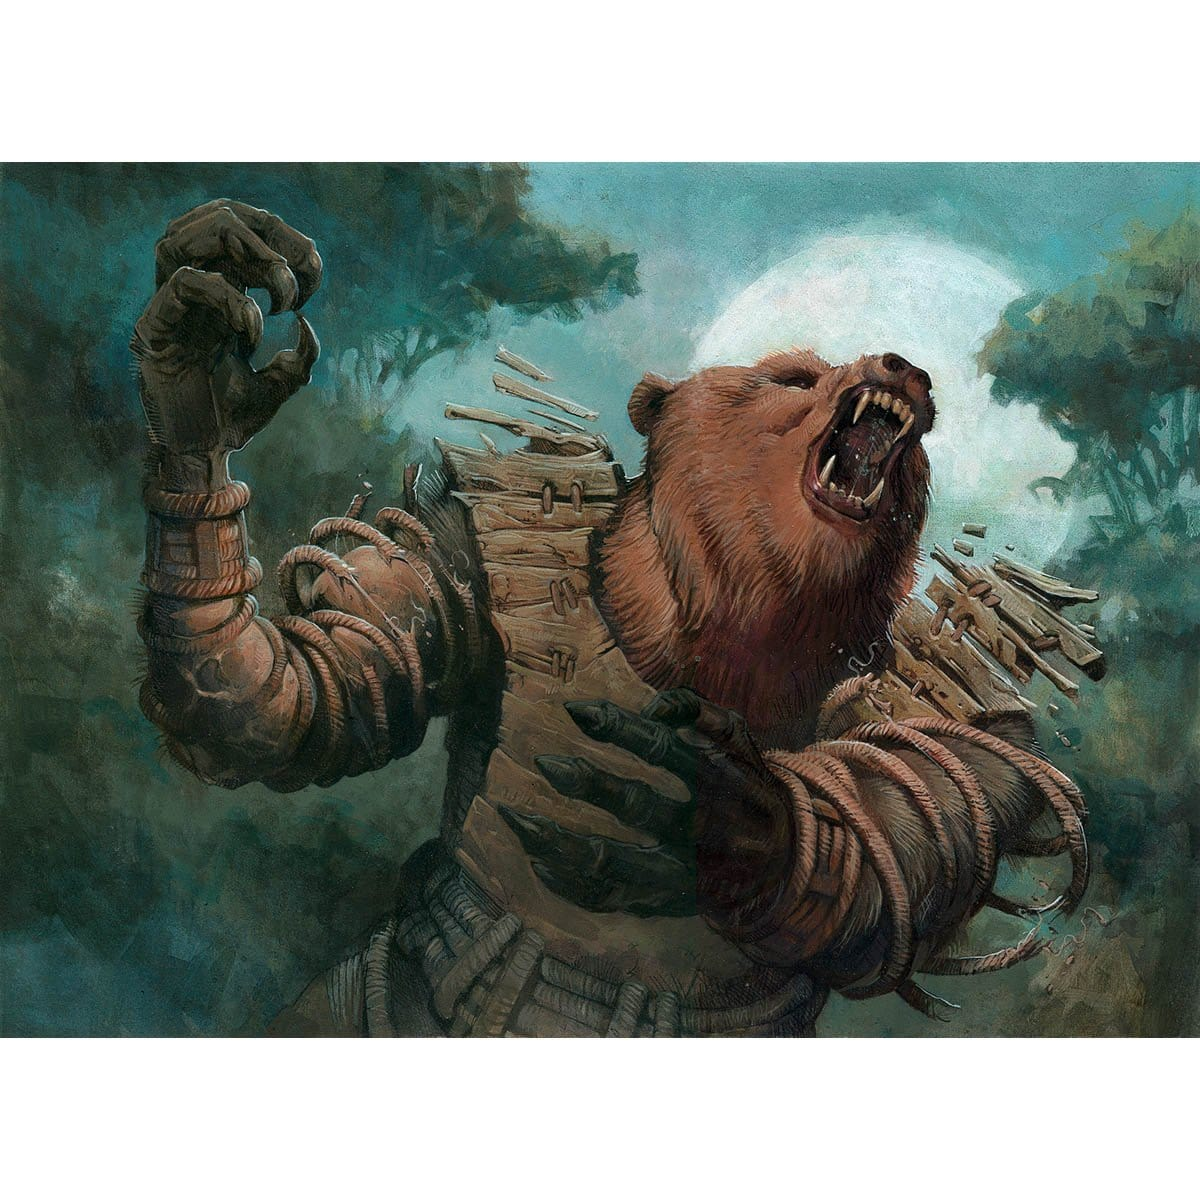 Werebear Print - Print - Original Magic Art - Accessories for Magic the Gathering and other card games